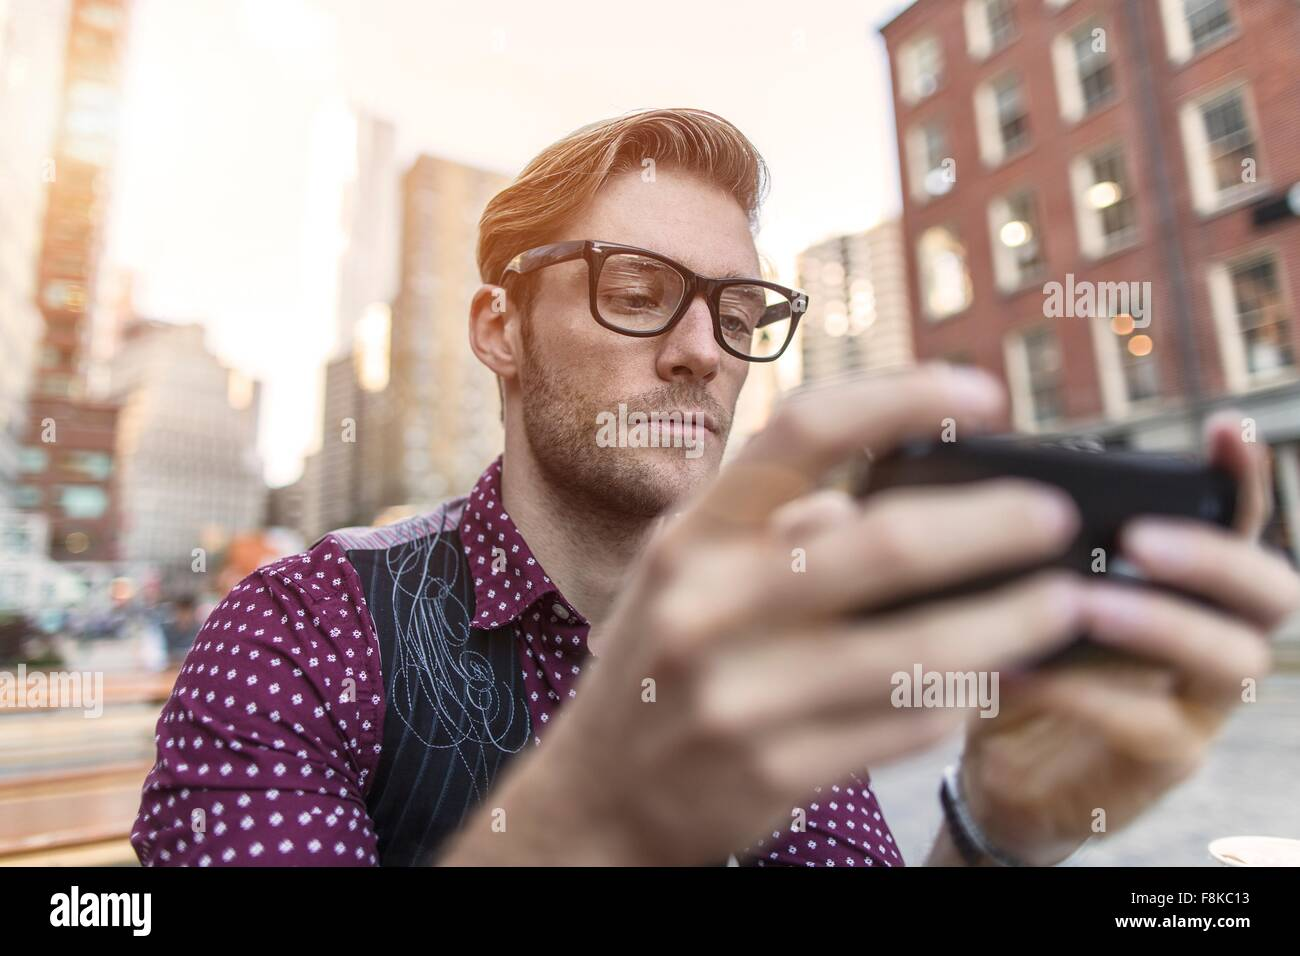 Young businessman reading text smartphone at sidewalk cafe, New York, USA Photo Stock